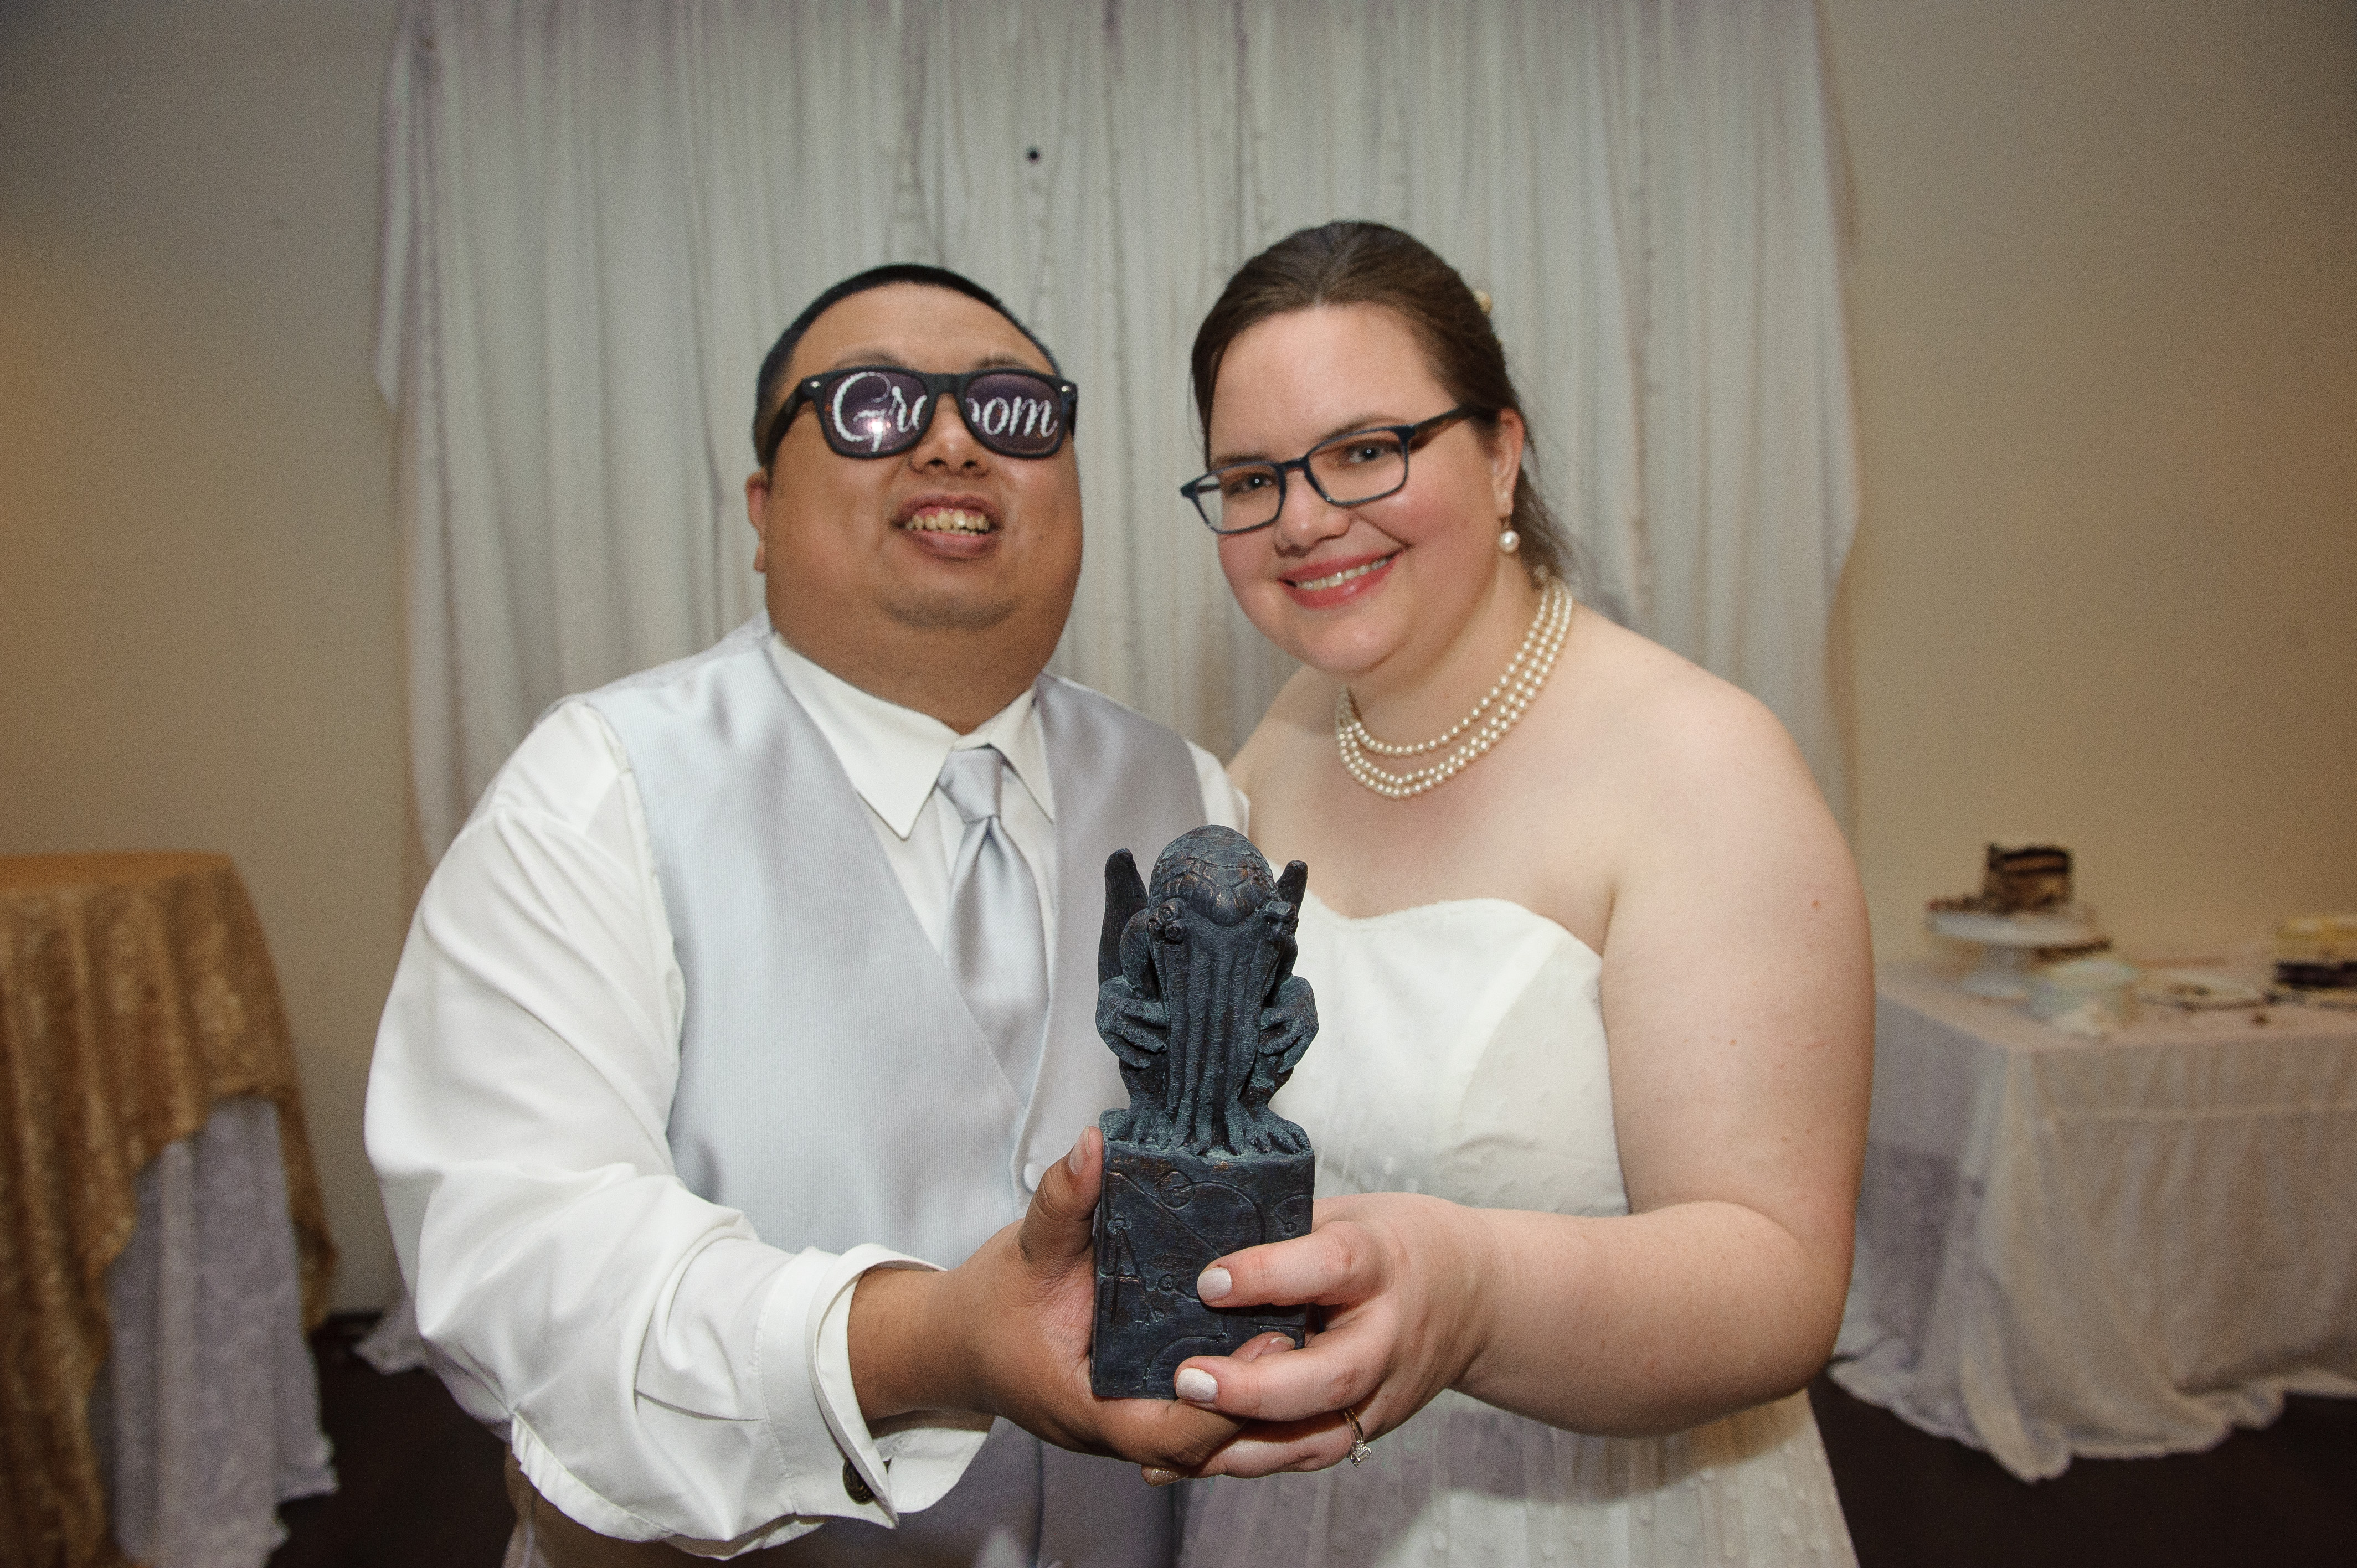 Megan and Aser hold out a Cthulhu statue after their wedding.